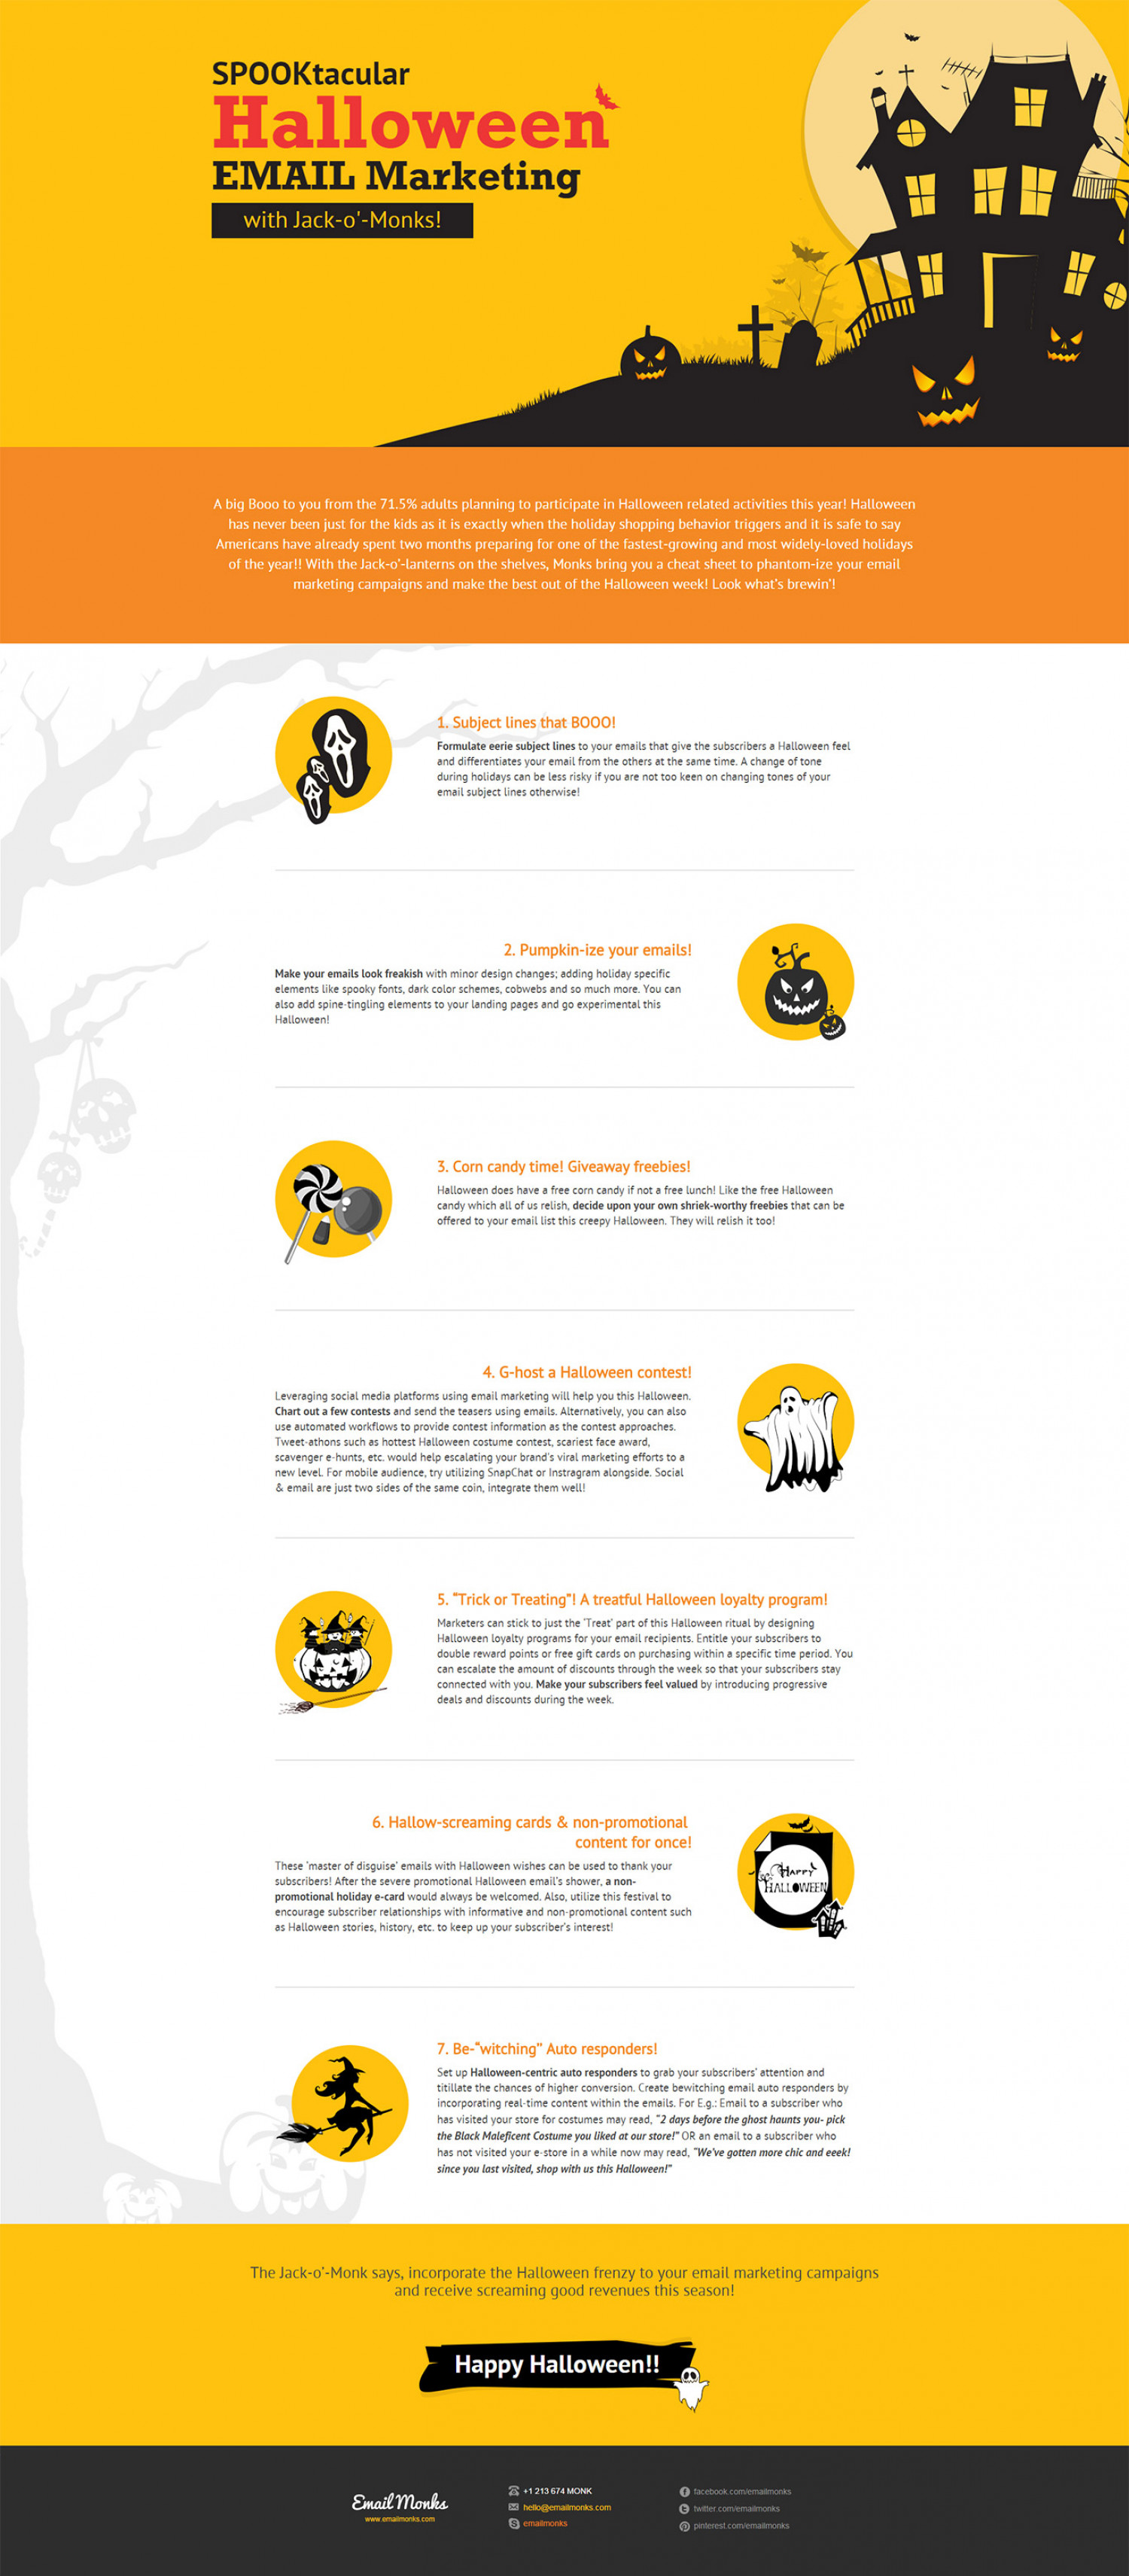 SPOOKtacular Halloween Email Marketing Tips | Visual.ly